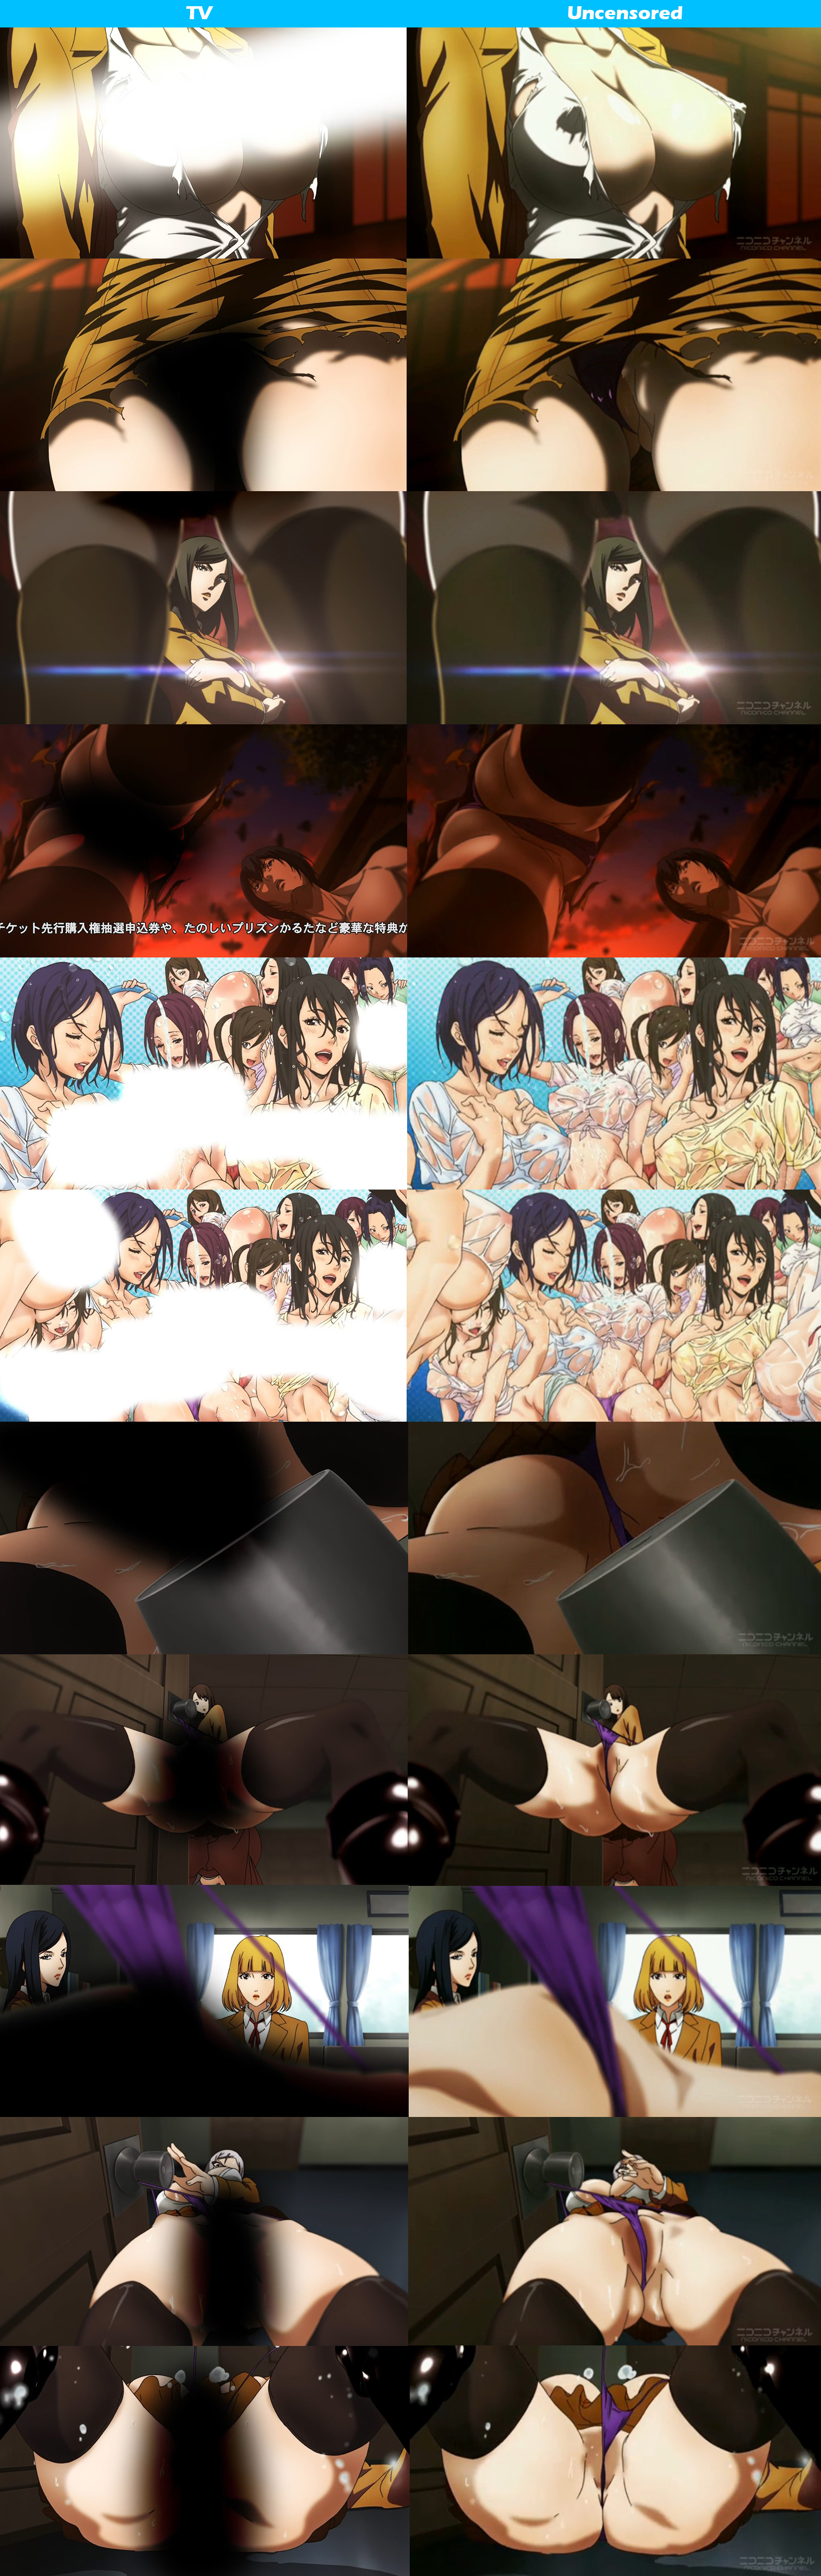 Prison-School-Anime-Censored-and-Uncensored-Comparison-6